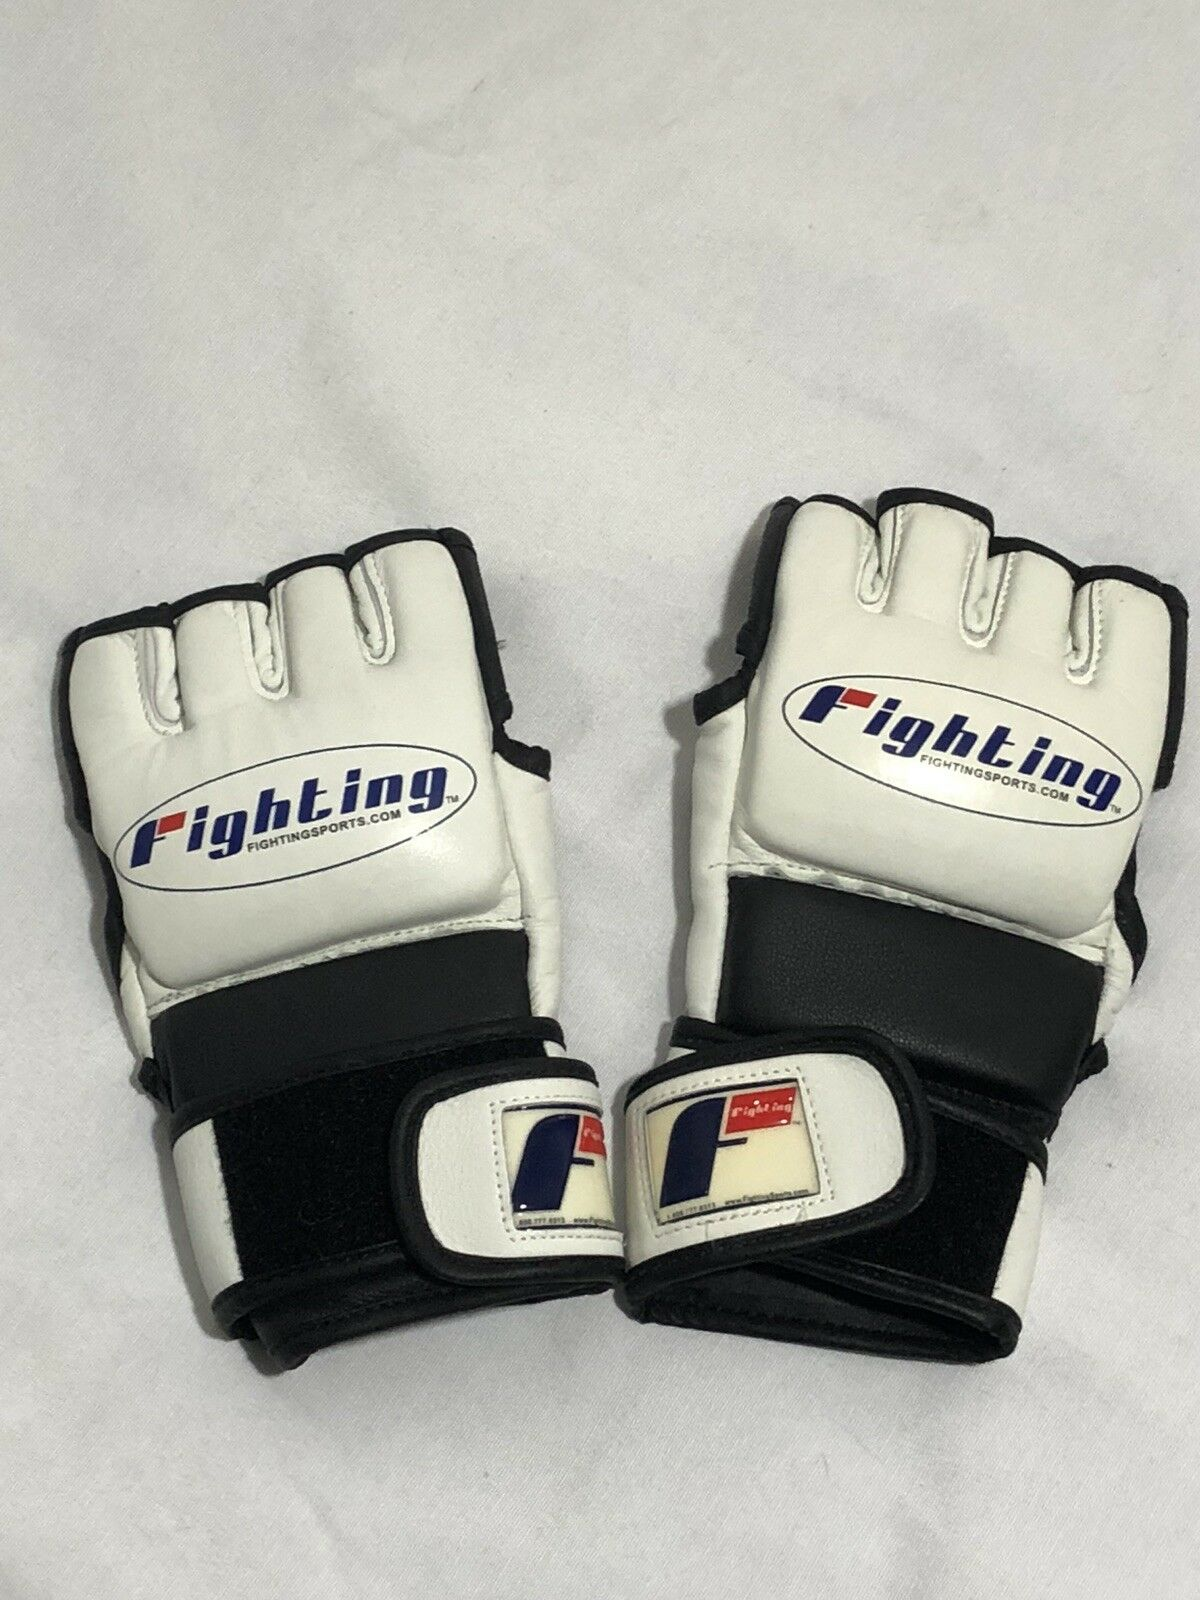 Fighting Sports  MMA G s Small  at cheap